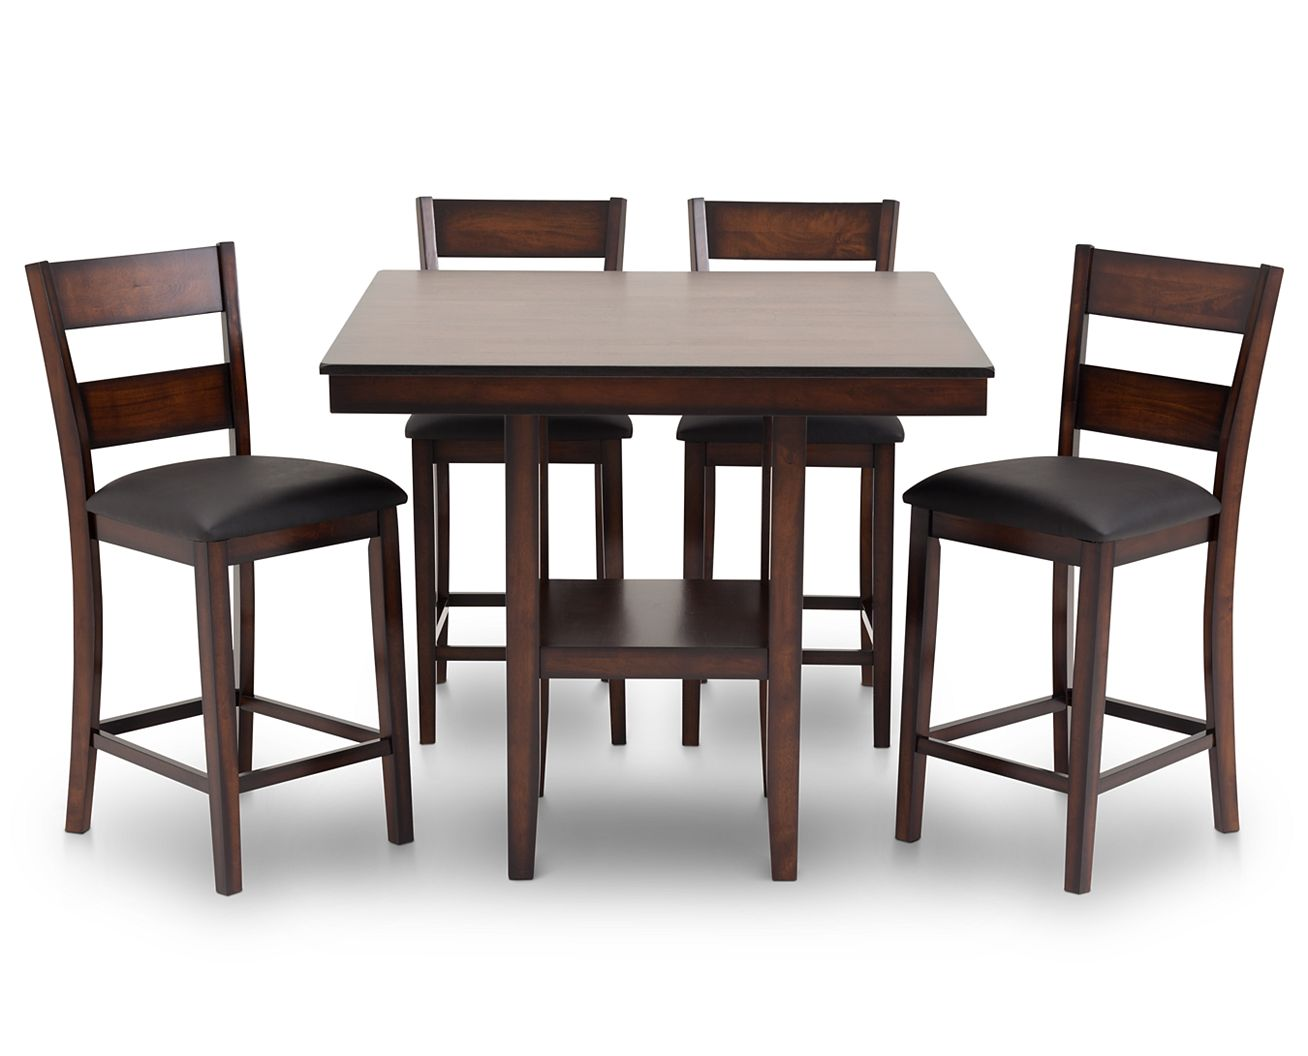 Baltimore 5 Pc. Counter Height Dining Room Set - Furniture Row